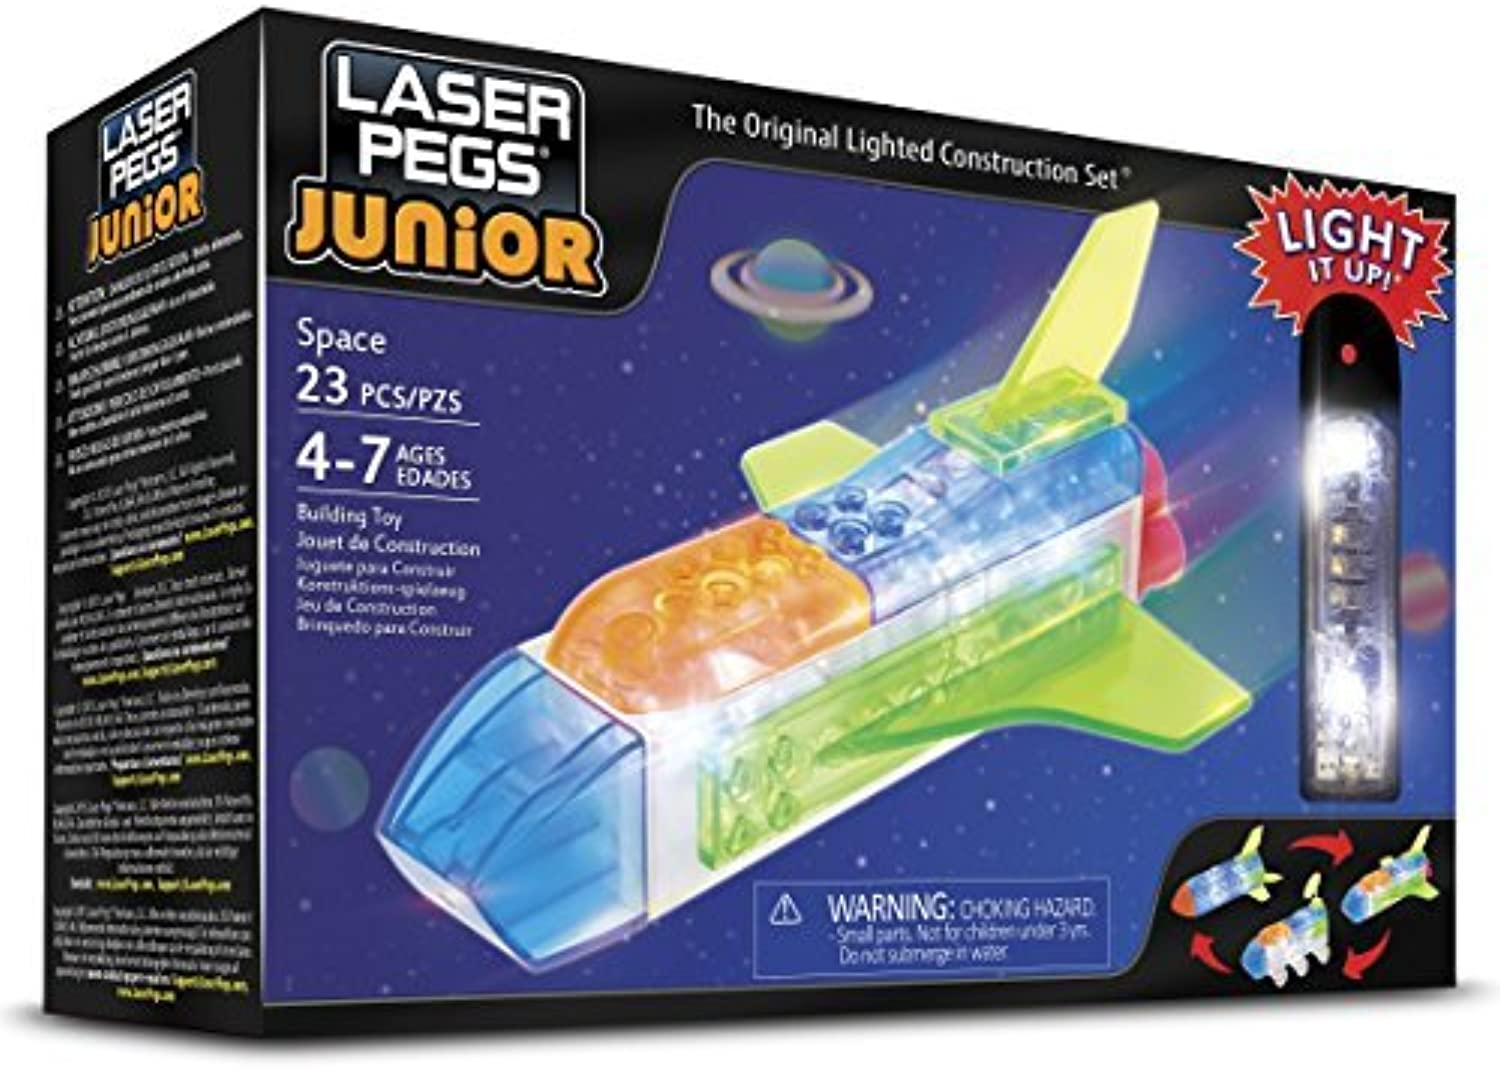 Laser Pegs Juniors 3 In 1 Space Building Kit by Laser Pegs